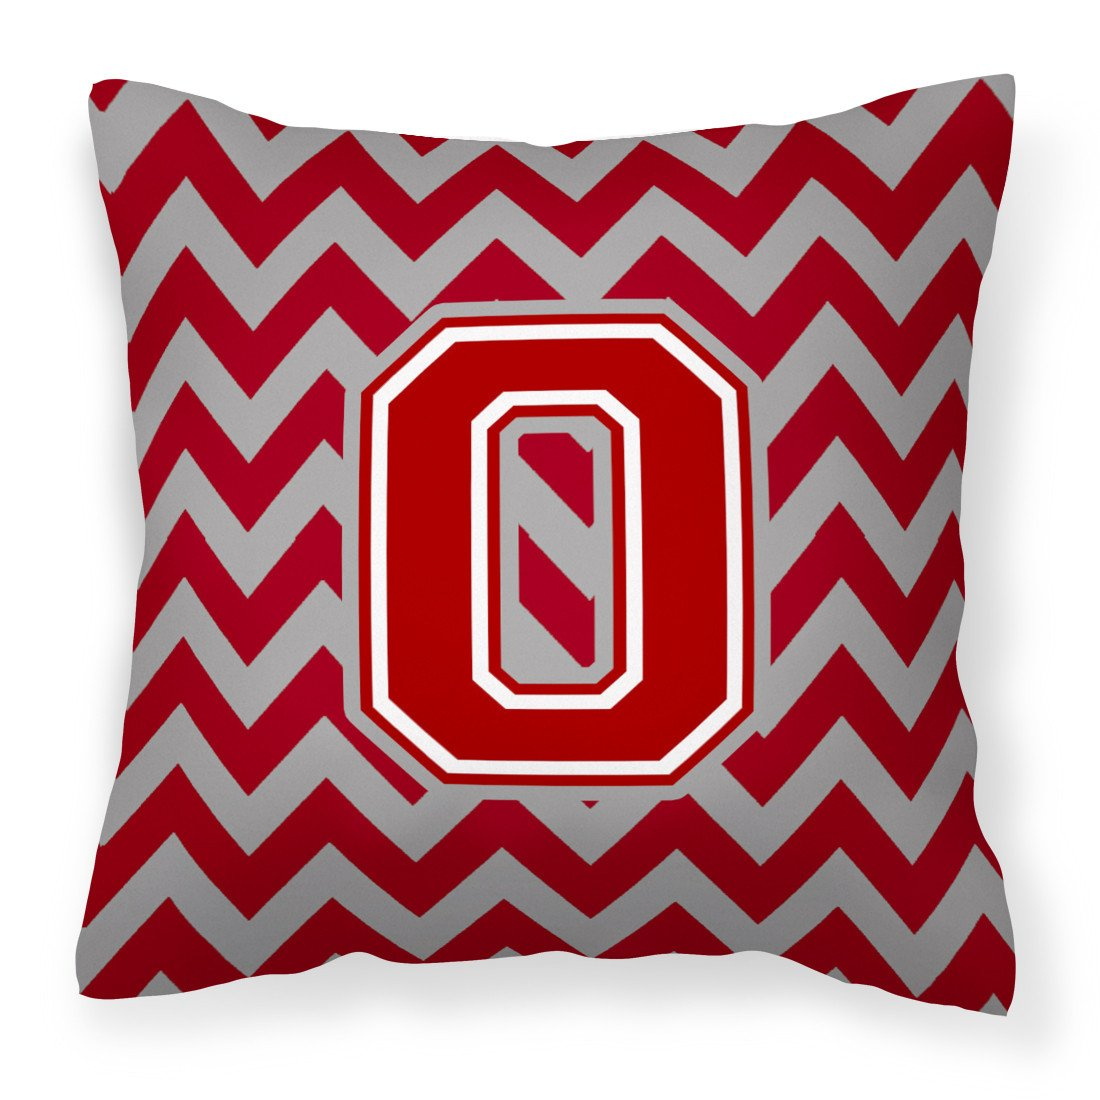 Letter O Chevron Maroon and White Fabric Decorative Pillow CJ1049-OPW1414 by Caroline's Treasures